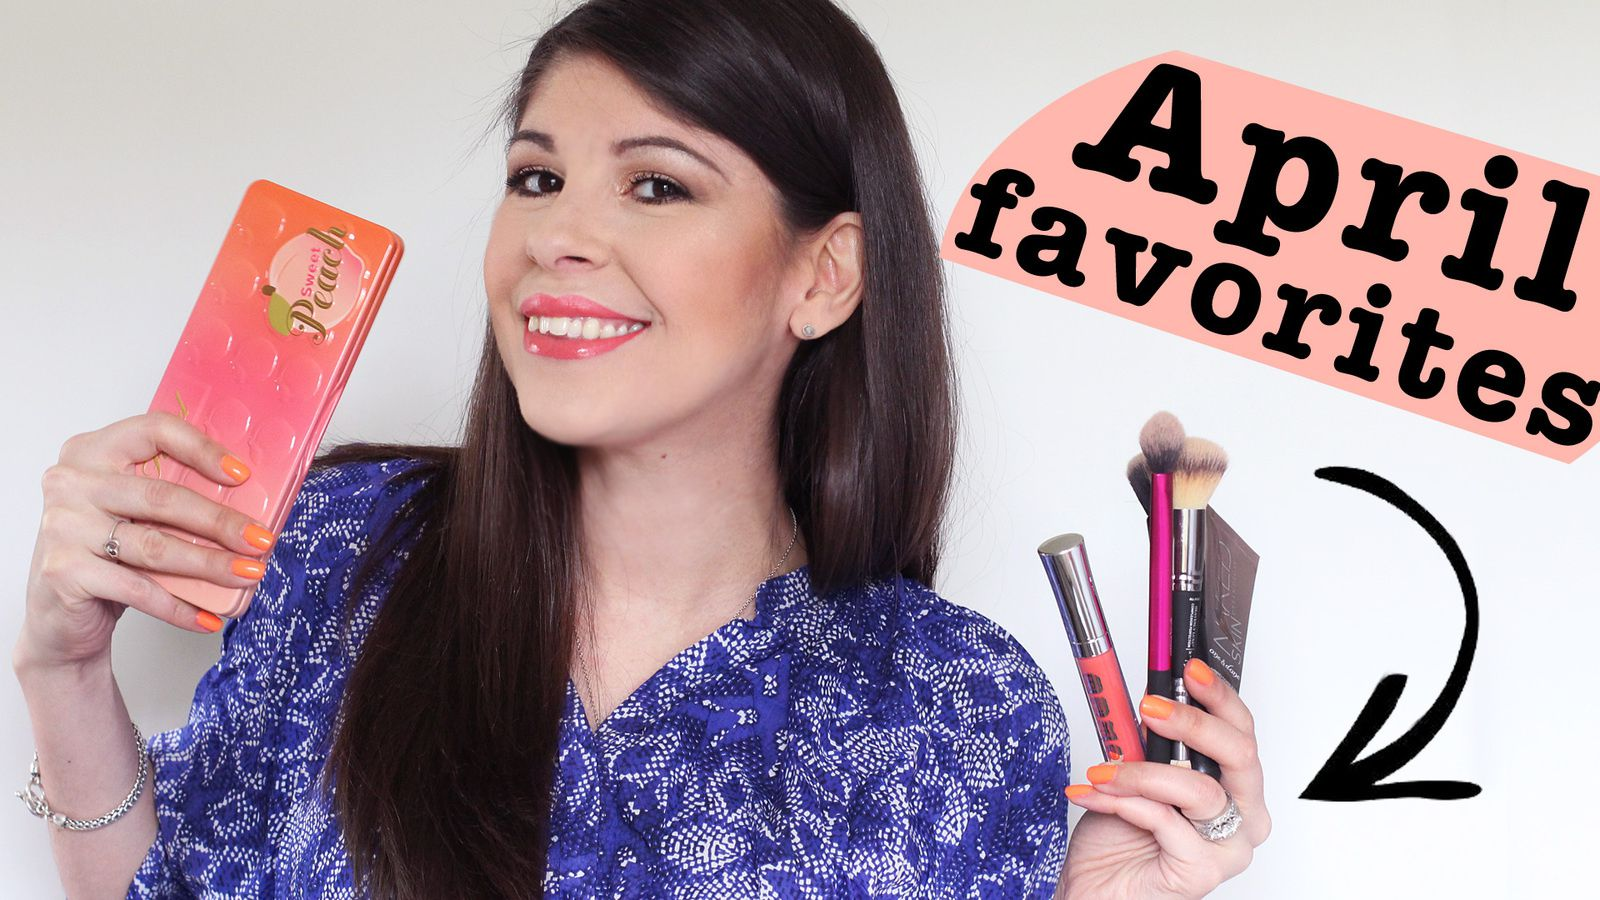 APRIL FAVORITES 2016! | Urban Decay, Wet n Wild, IT Cosmetics &amp&#x3B; more!